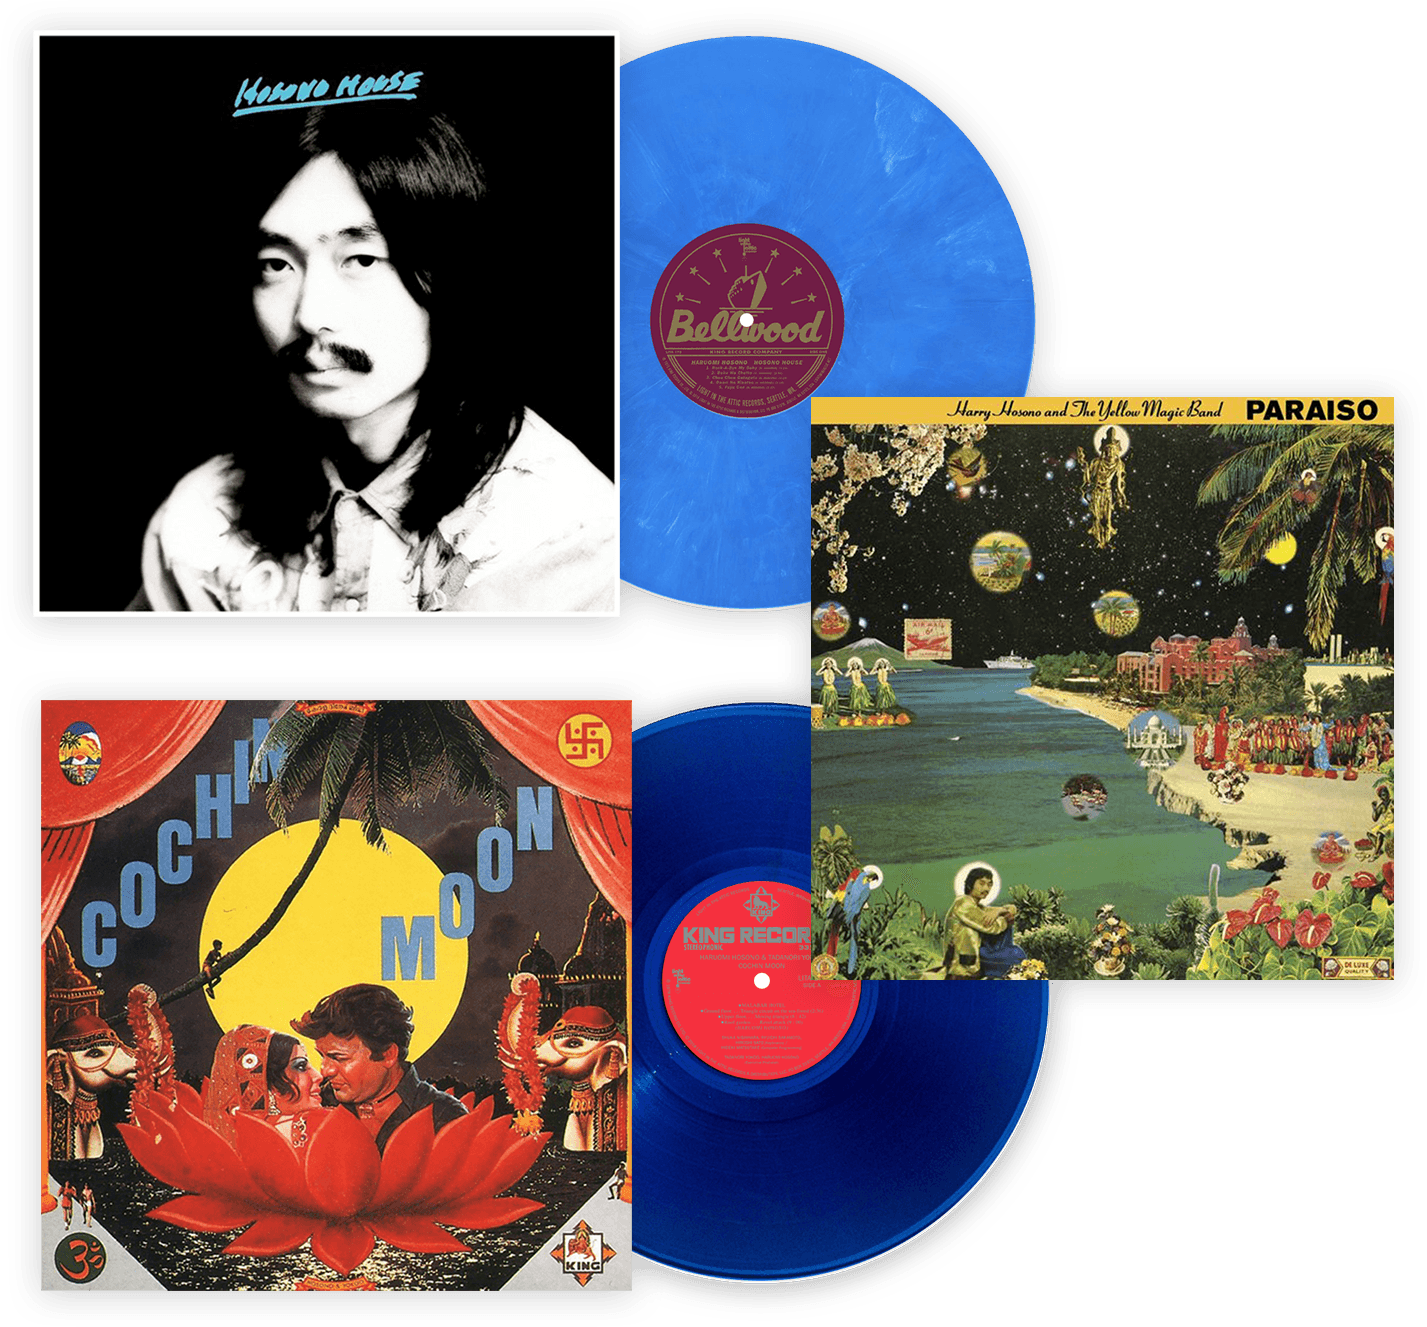 Hosono Bundle